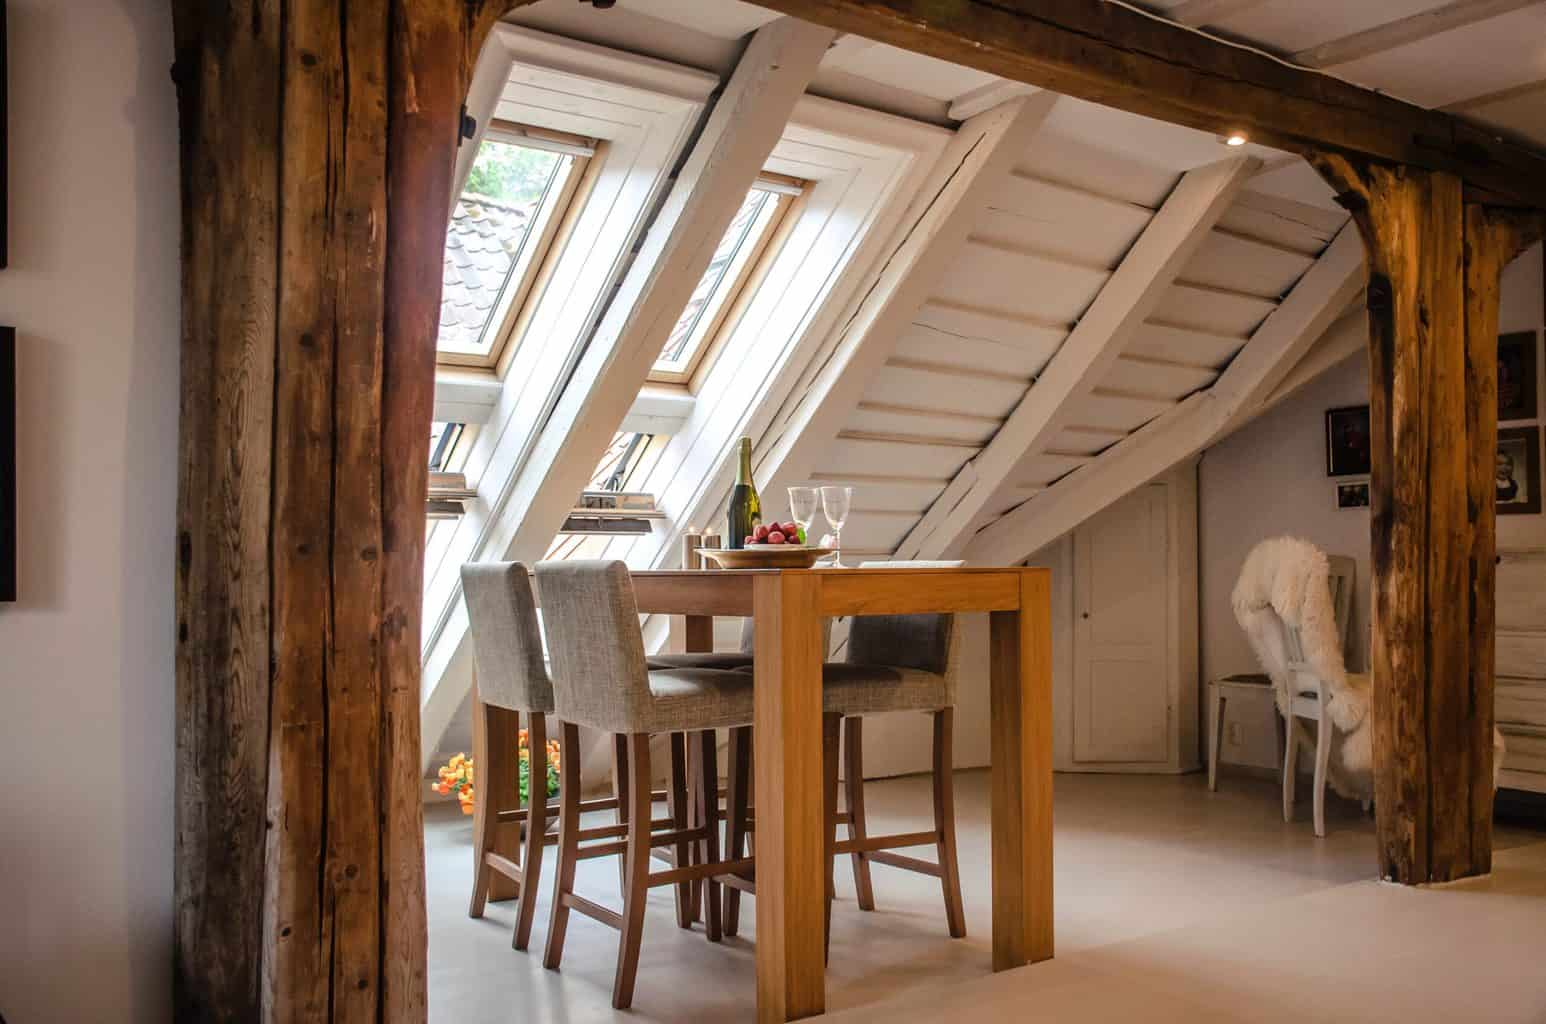 Wooden columns with a wooden dining table near the window